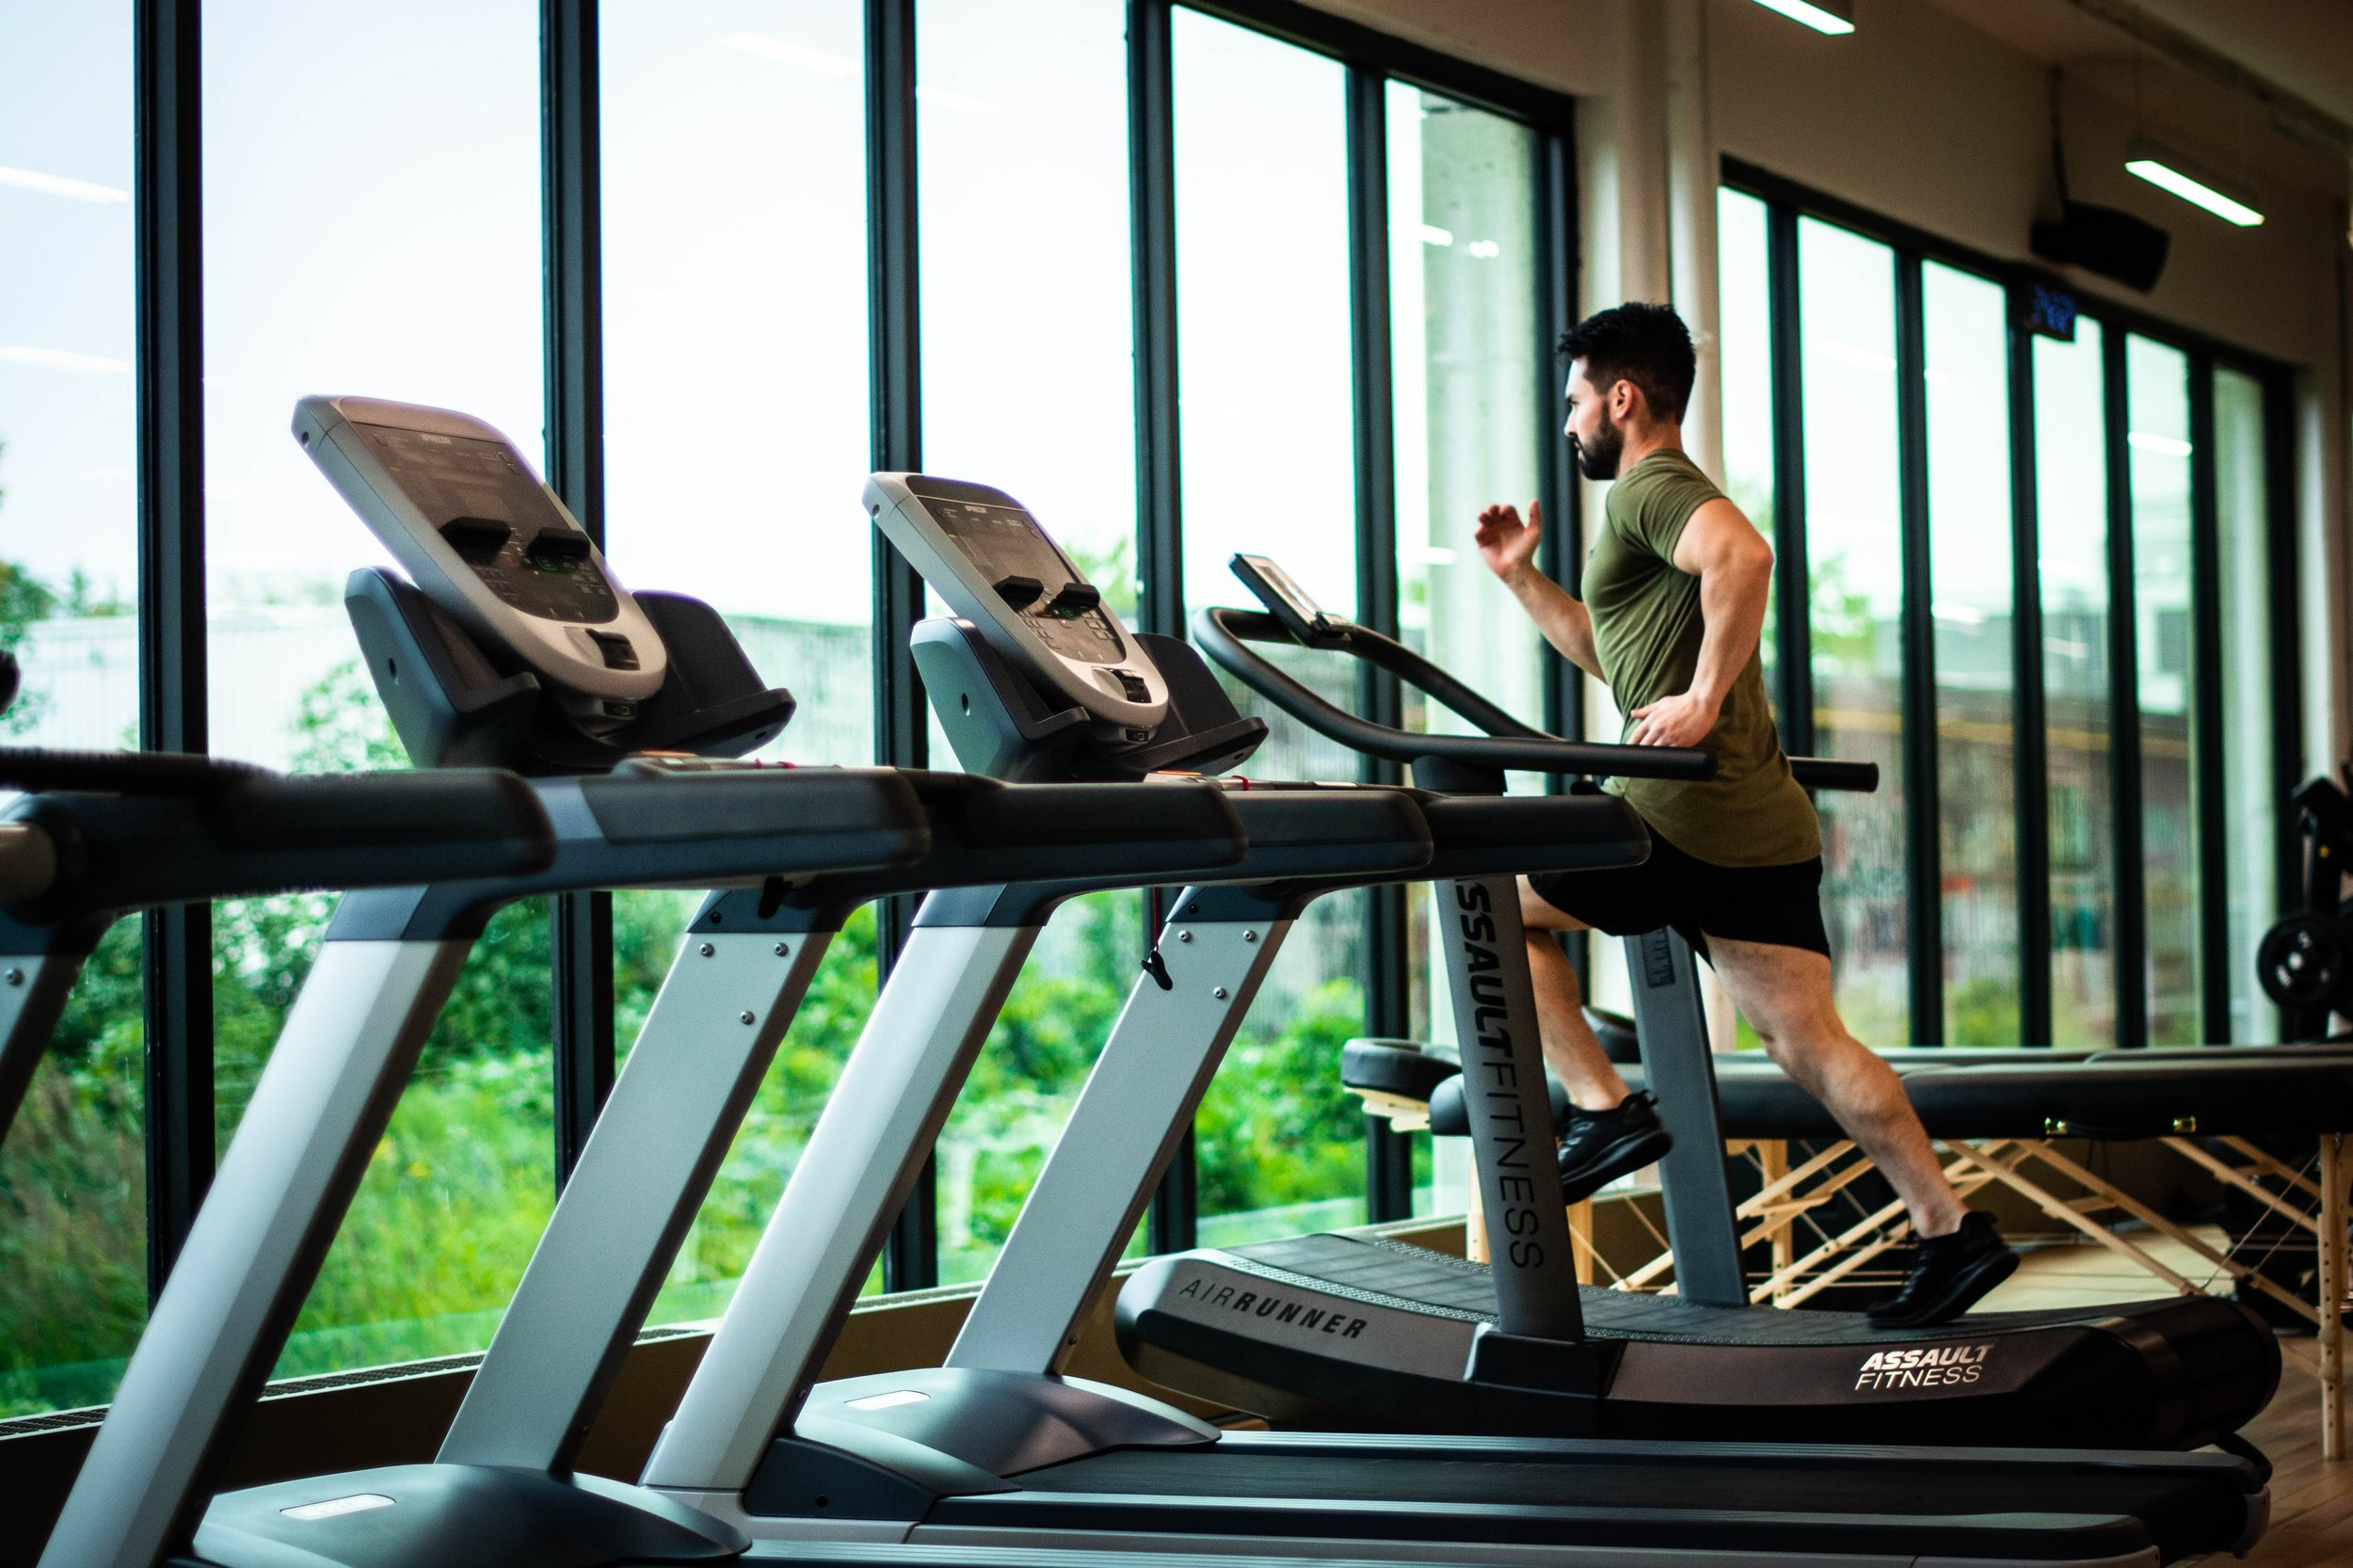 Are members getting the best experience possible at your gym? They can with digital signage - if it's done right.